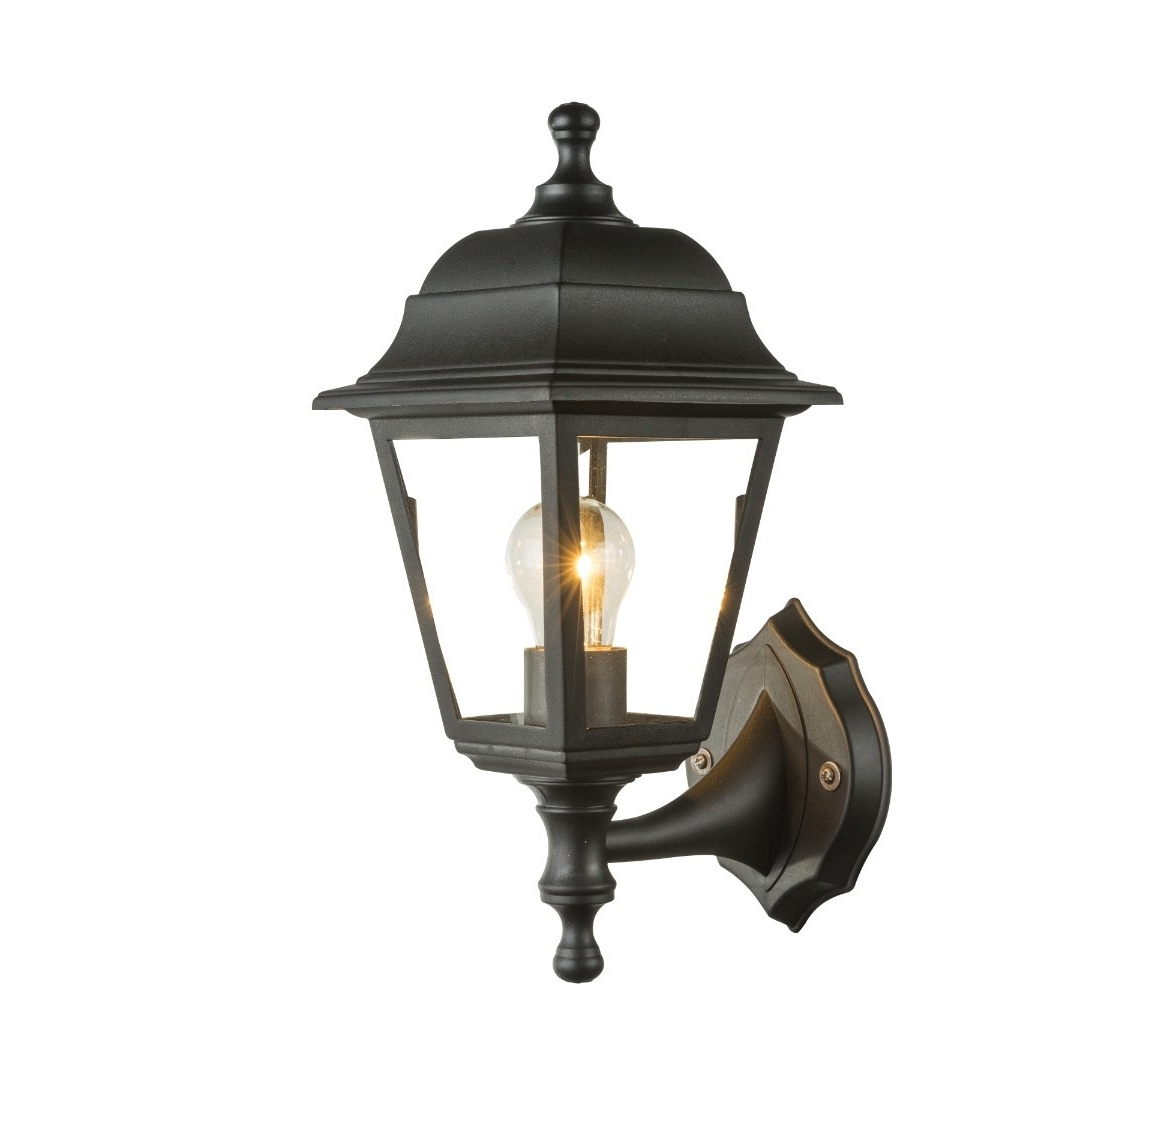 Big Outdoor Wall Lighting With Most Current Outdoor Wall Light Globo 31885 – Big Selection Of Lights (View 14 of 20)